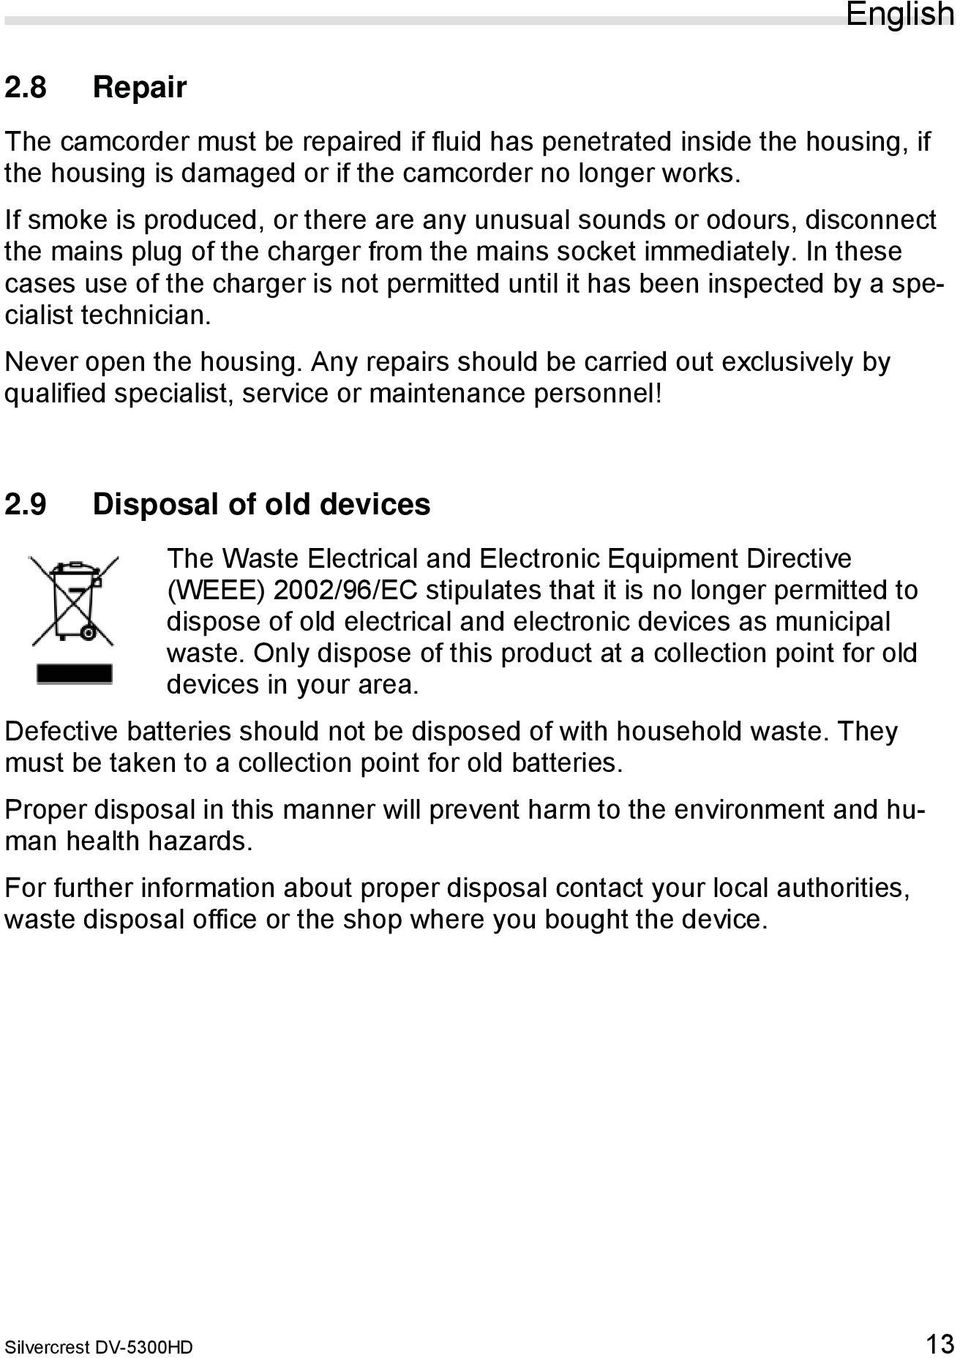 In these cases use of the charger is not permitted until it has been inspected by a specialist technician. Never open the housing.